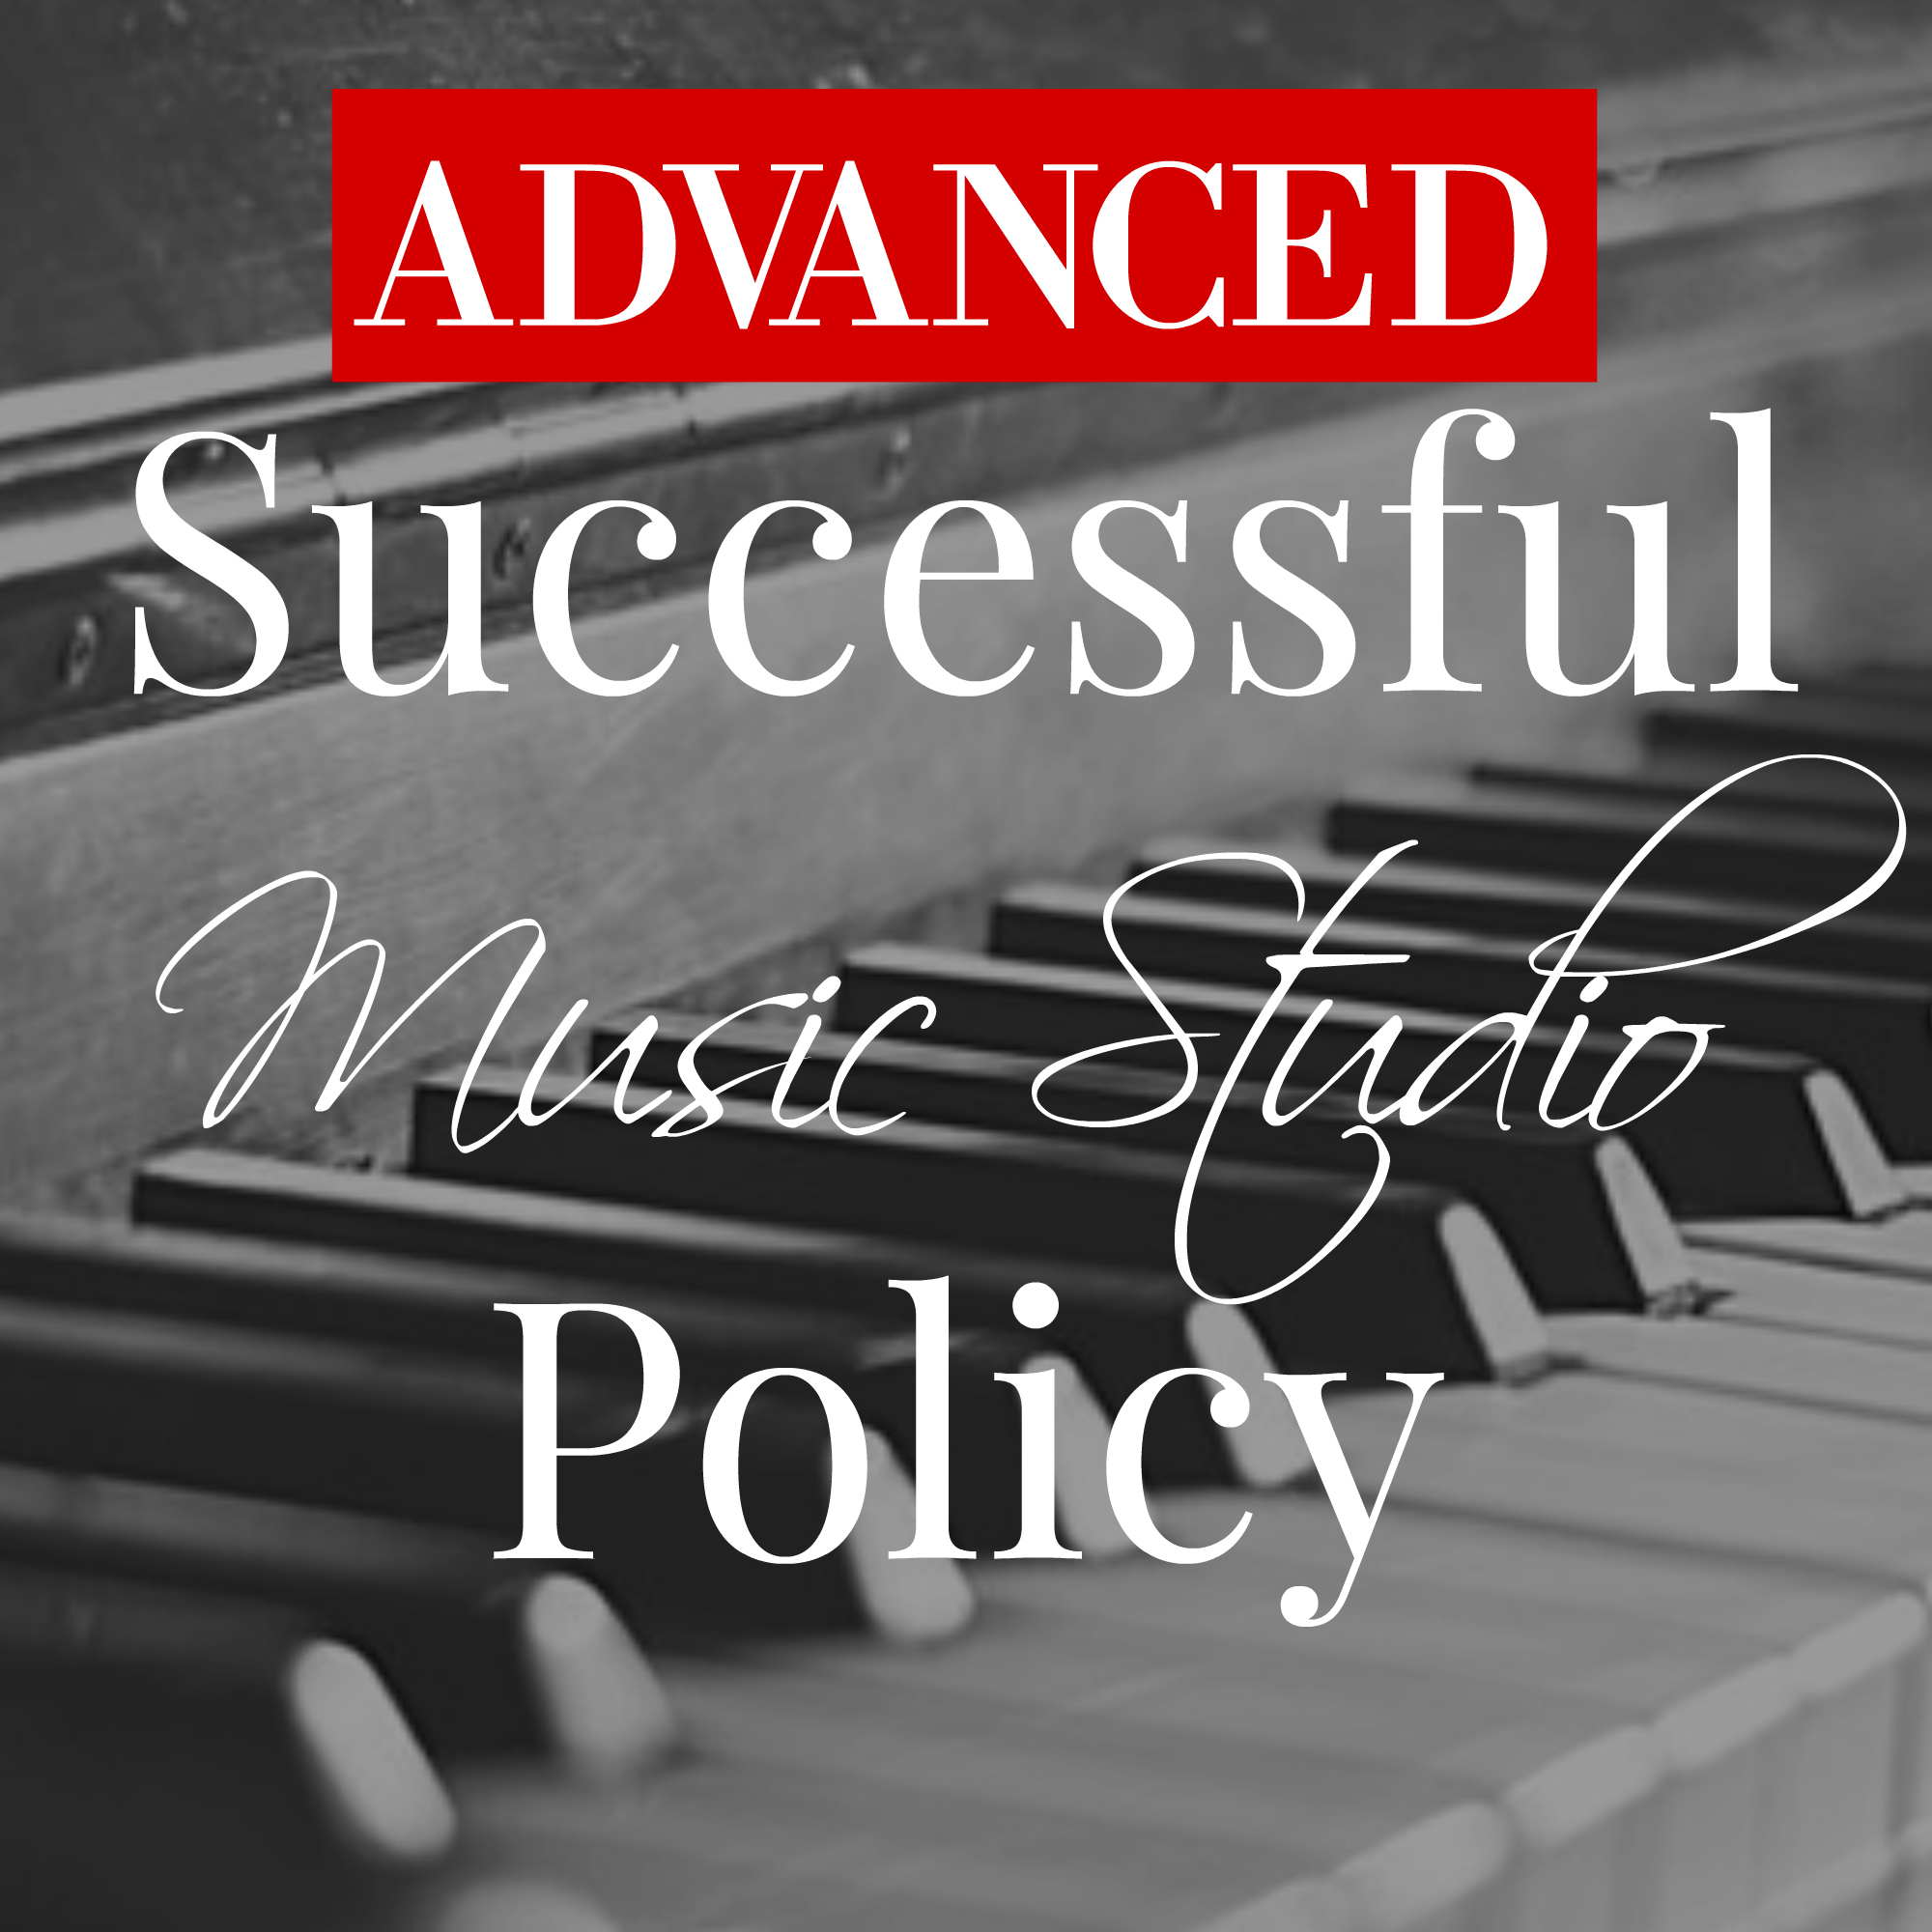 ADVANCED MUSIC POLICY - Basic policy Plus 3 Additional SECTIONS to: INCREASING INCOME, Recruiting NEW STUDENTs and Student Retention